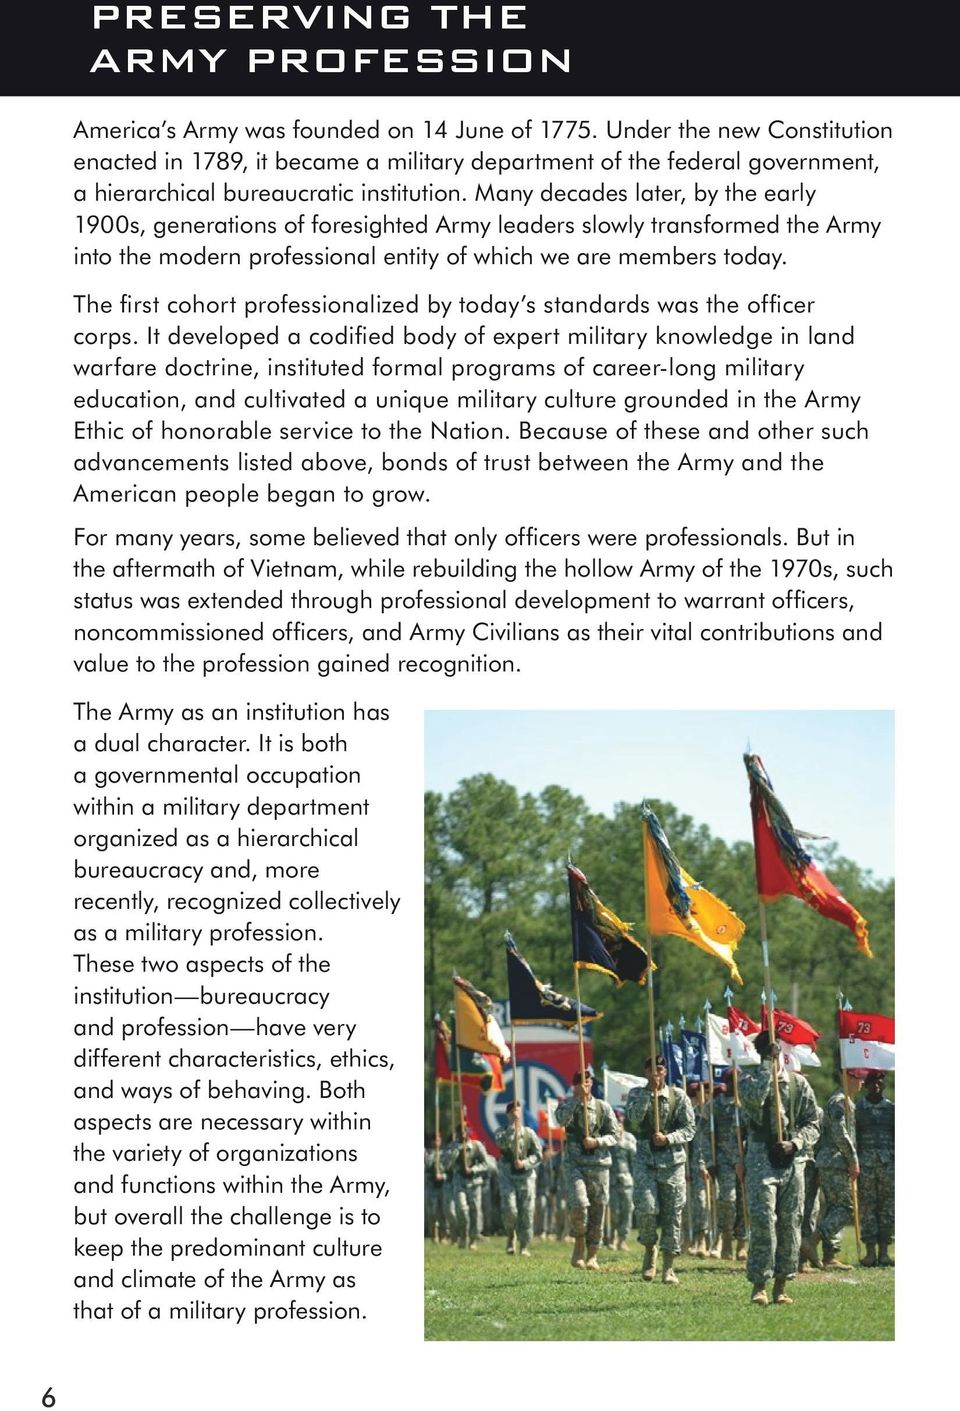 Many decades later, by the early 1900s, generations of foresighted Army leaders slowly transformed the Army into the modern professional entity of which we are members today.